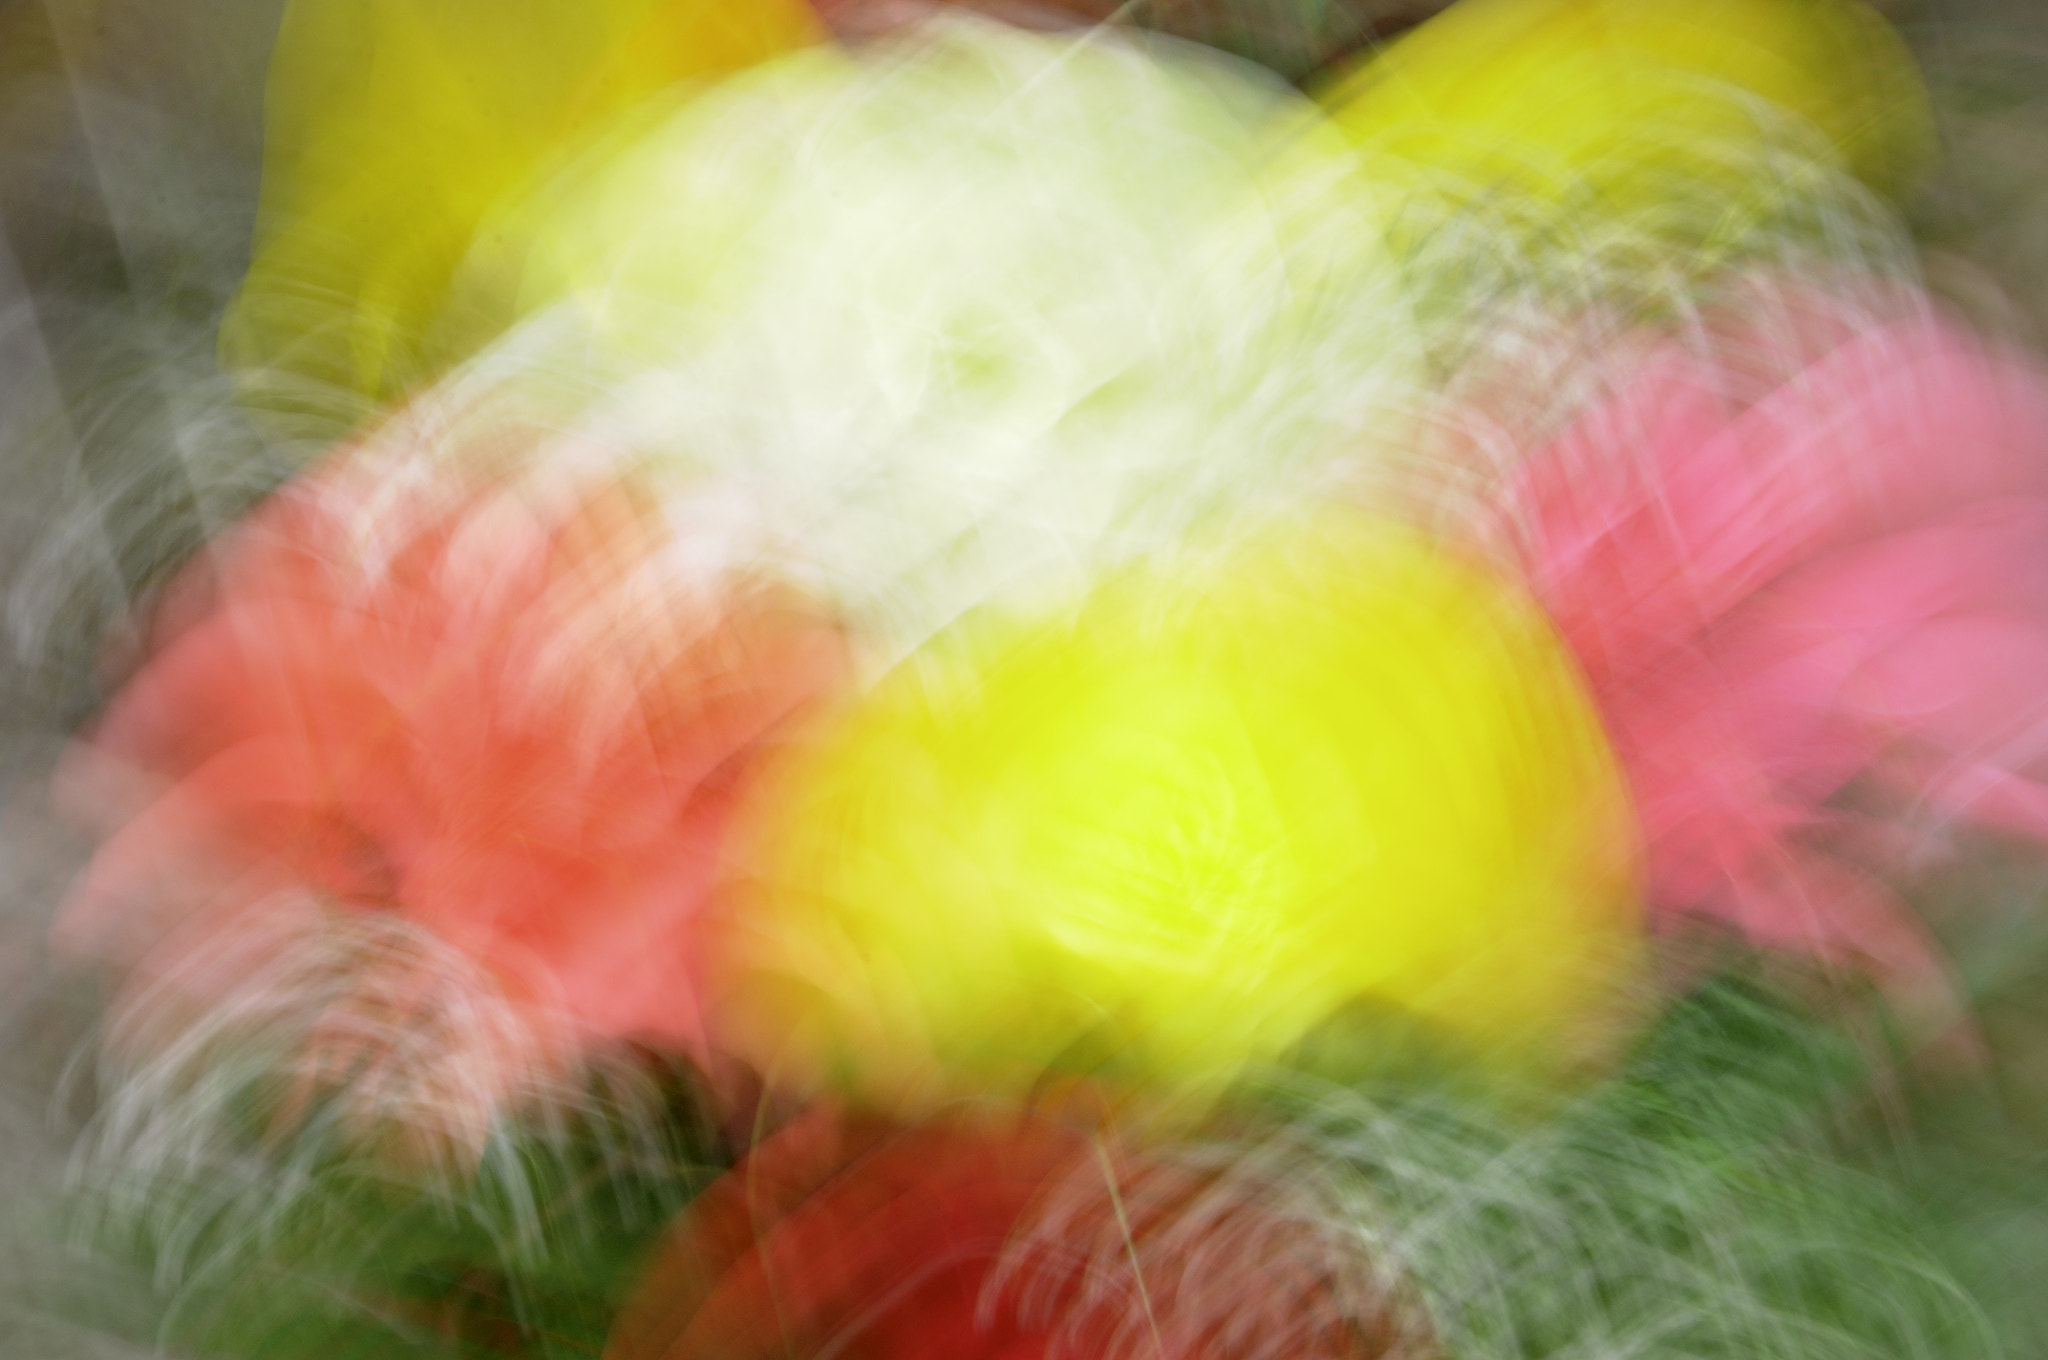 Photograph Blurring in motio by John Fields on 500px